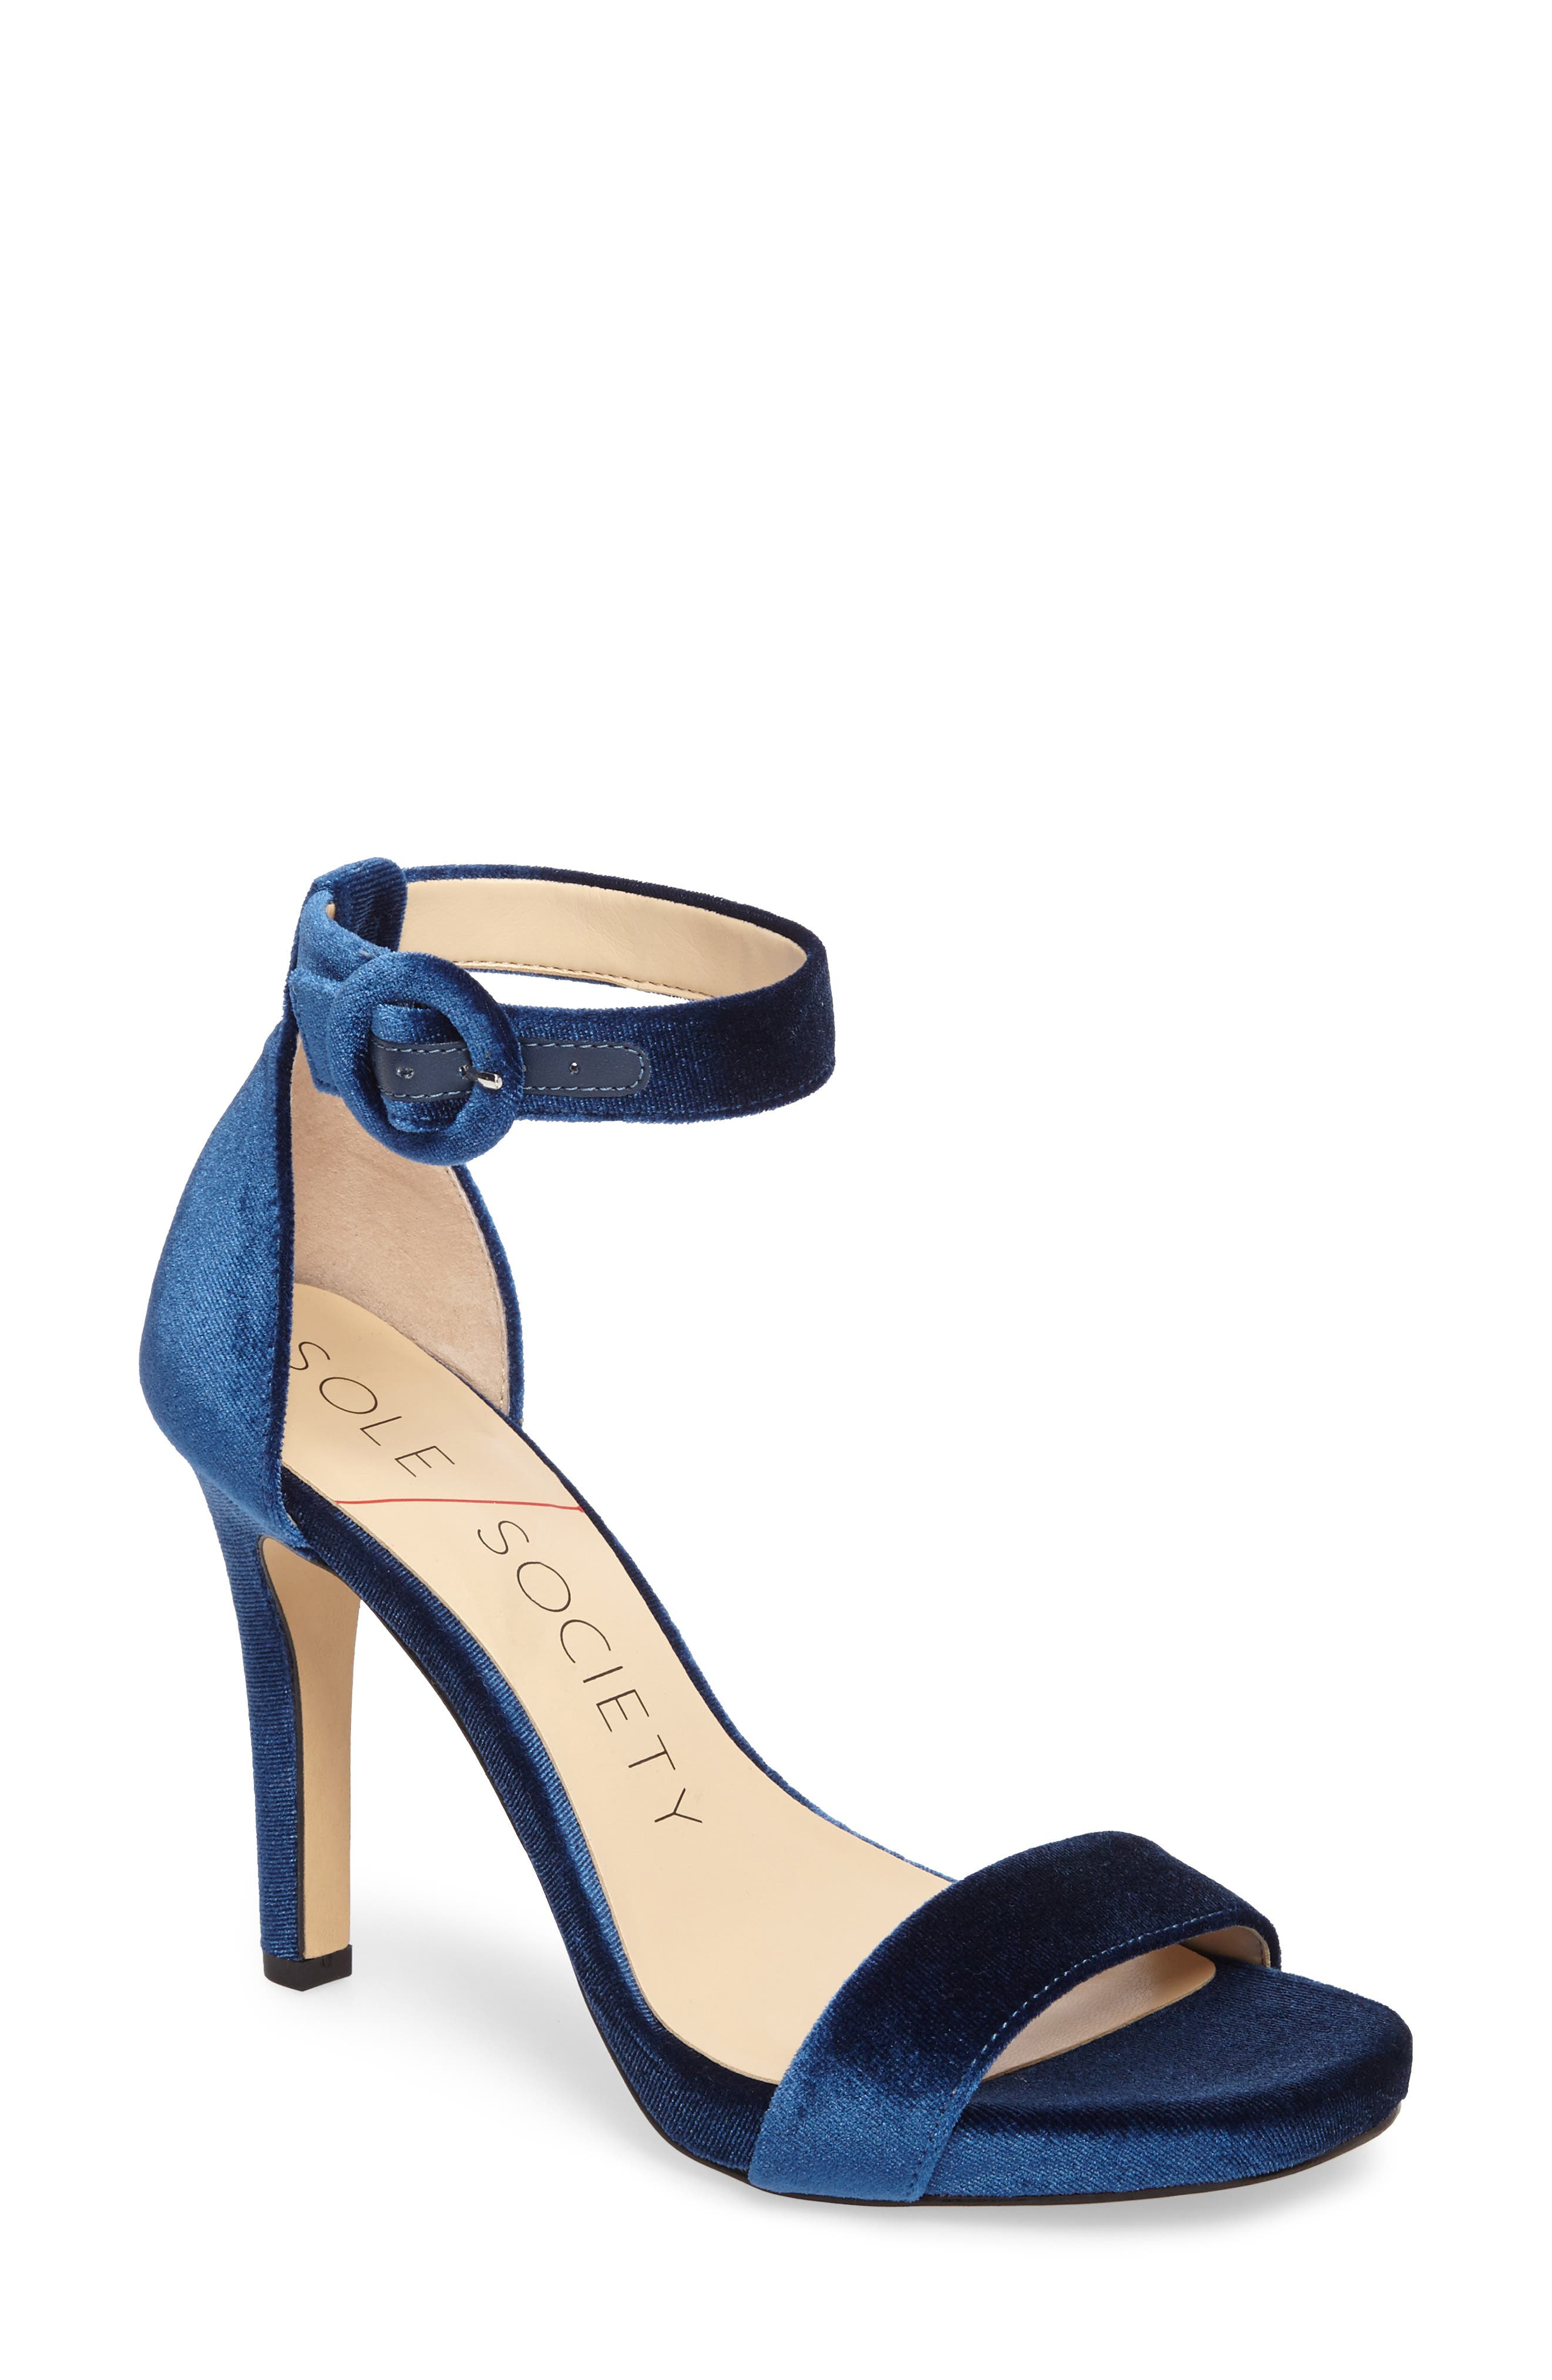 Main Image - Sole Society Emelia Ankle Strap Sandal (Women)